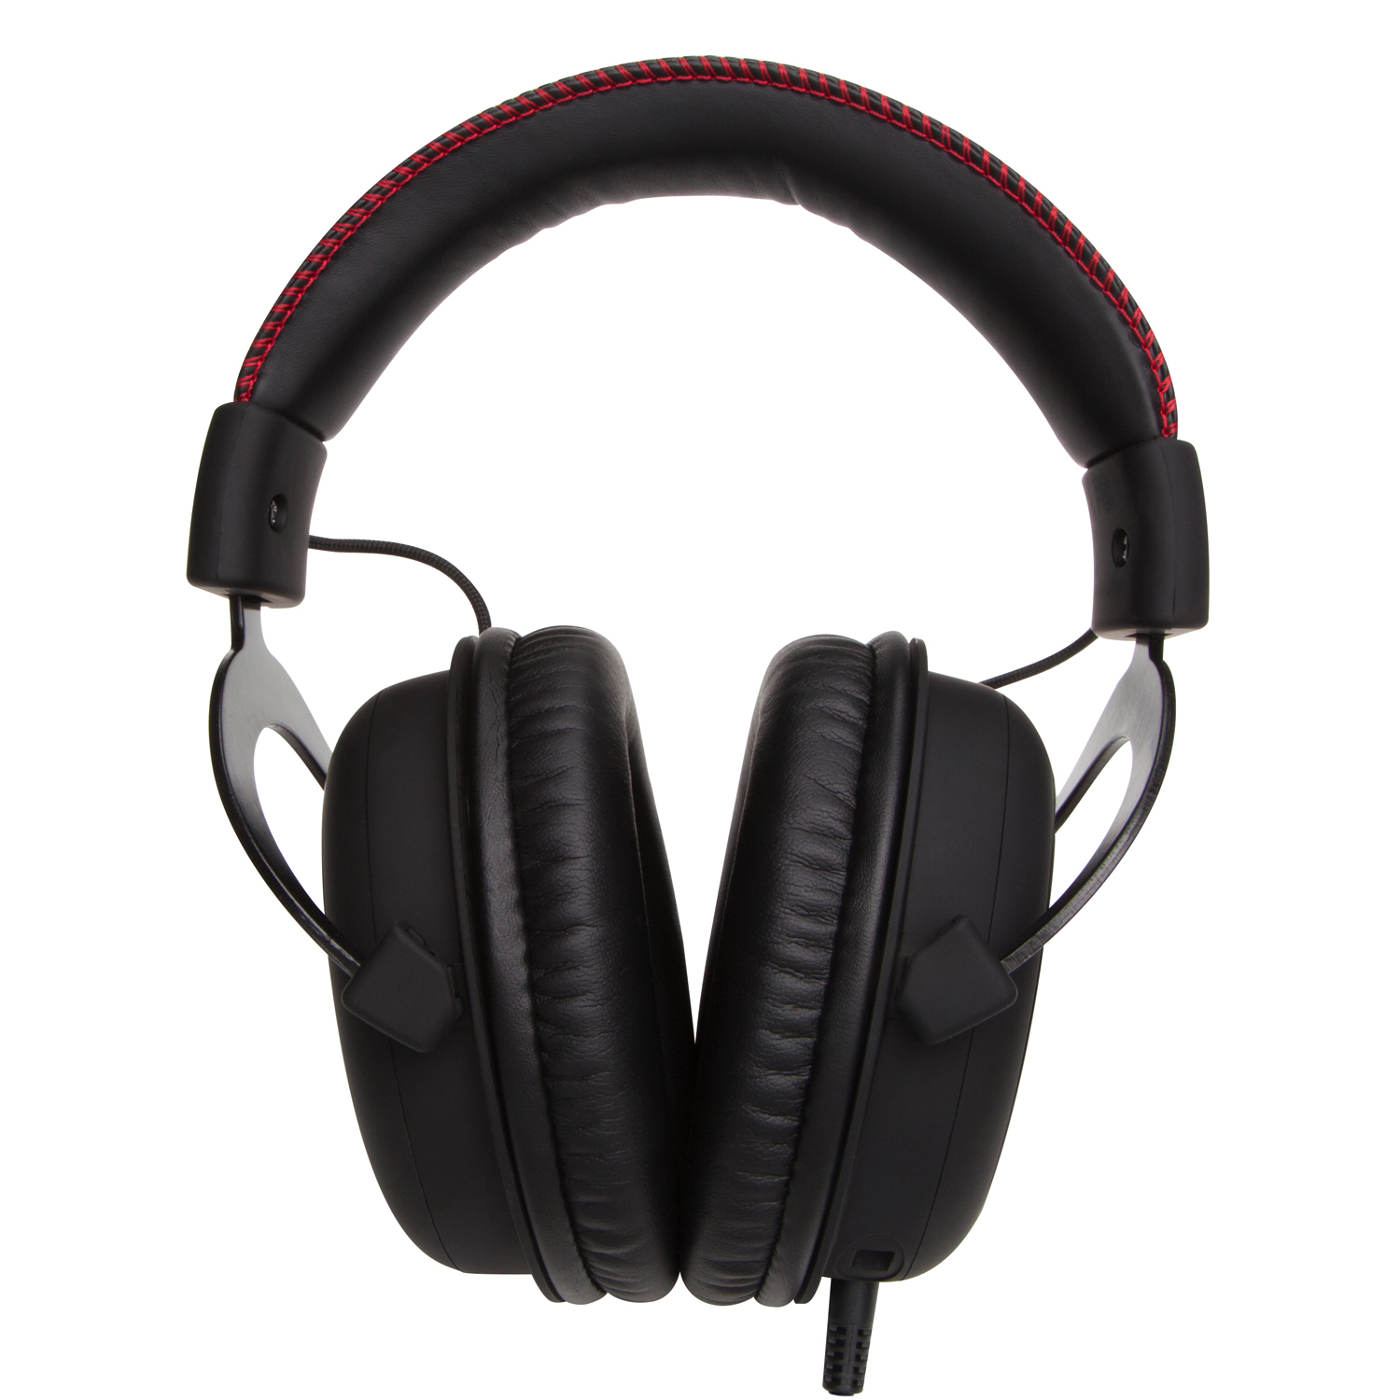 kingston hyperx cloud casque micro filaire pour gamer. Black Bedroom Furniture Sets. Home Design Ideas